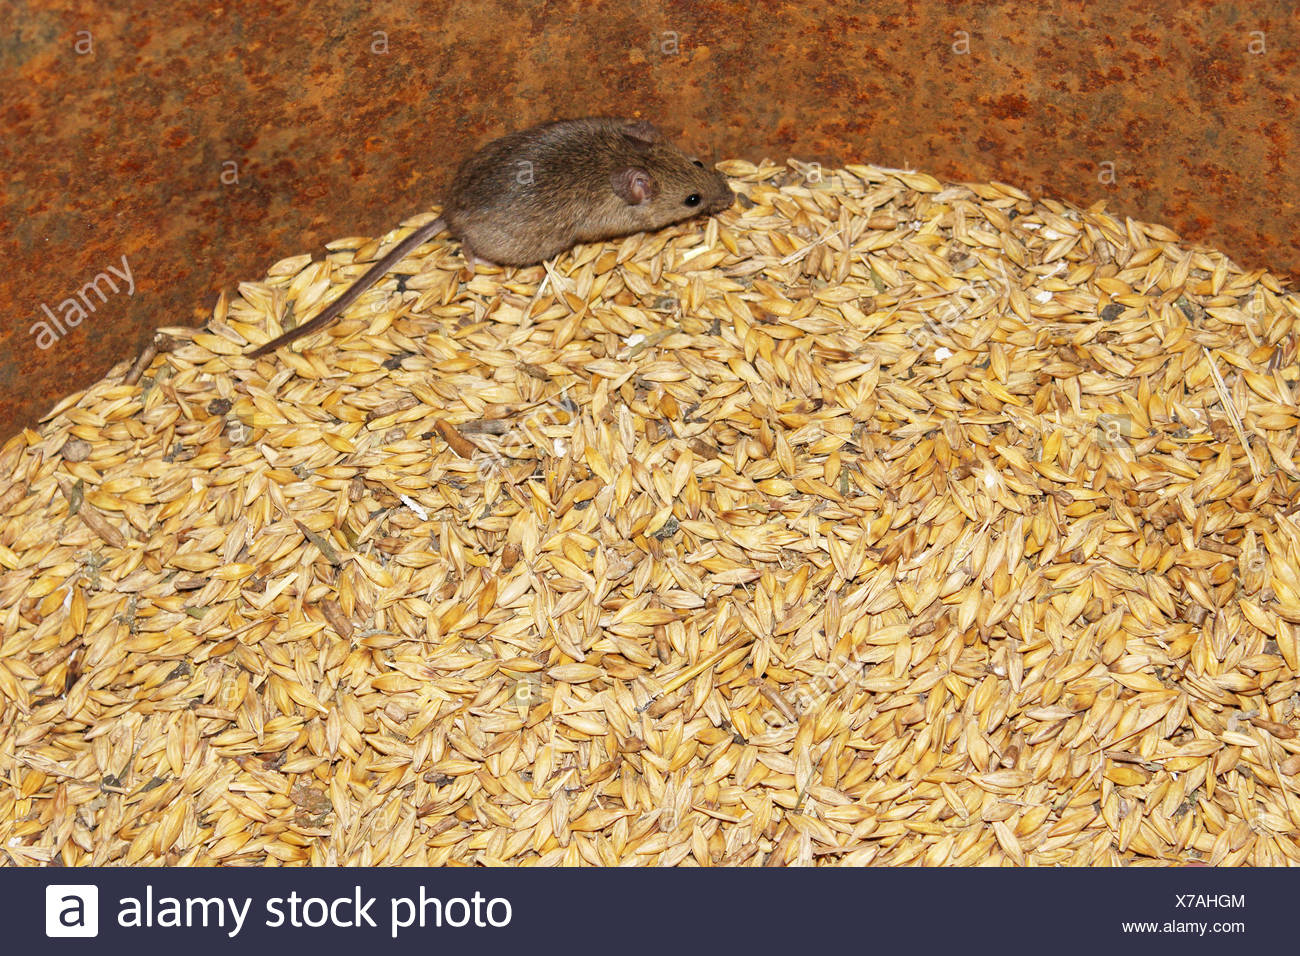 little grey mouse running on the wheat in the pantry - Stock Image